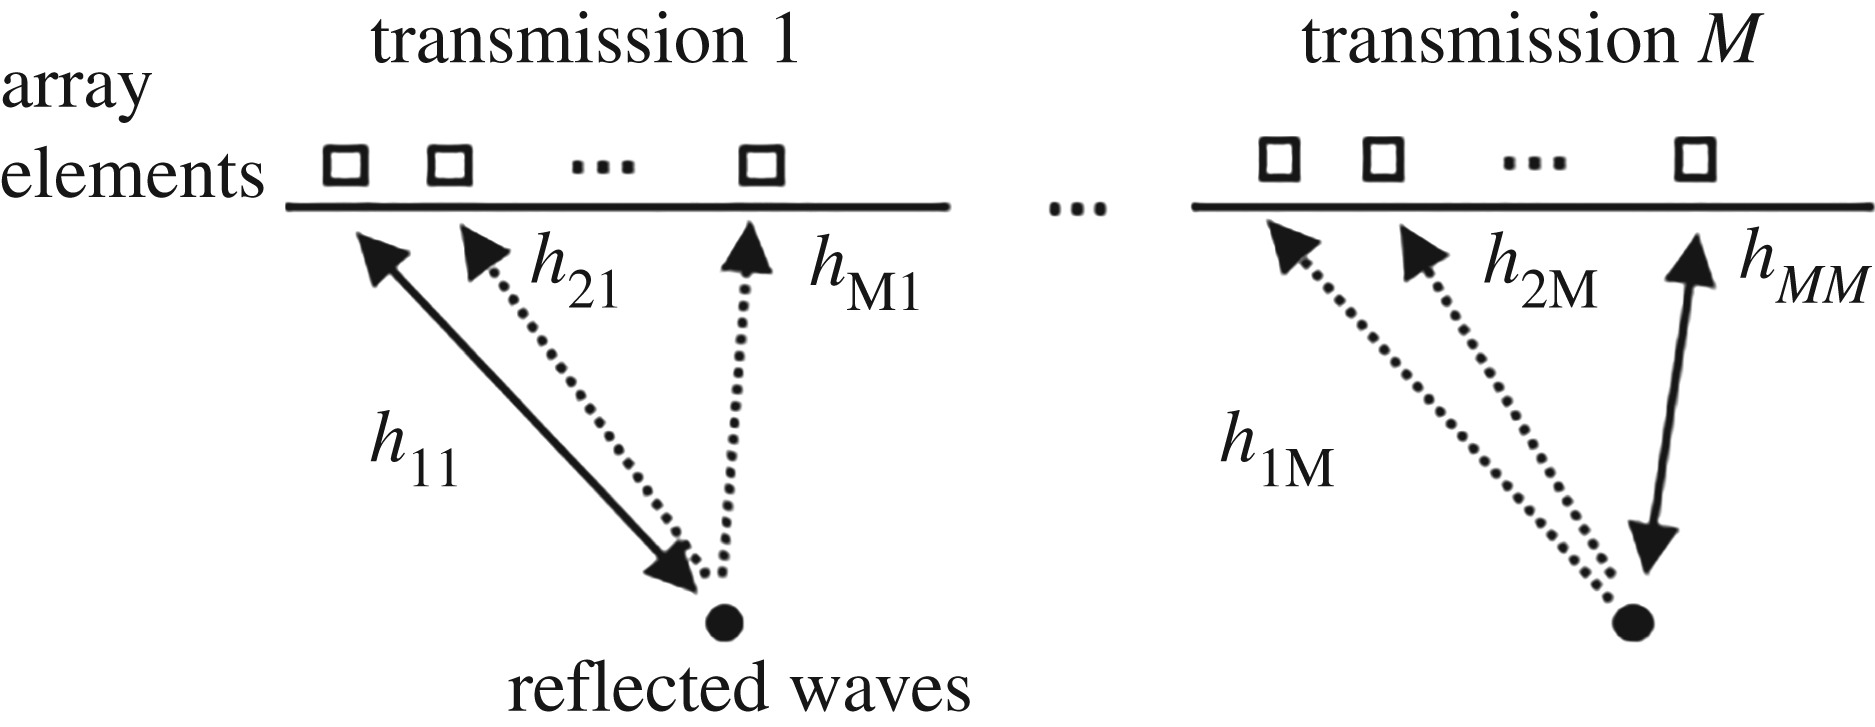 Simultaneous transmission and reception on all elements of